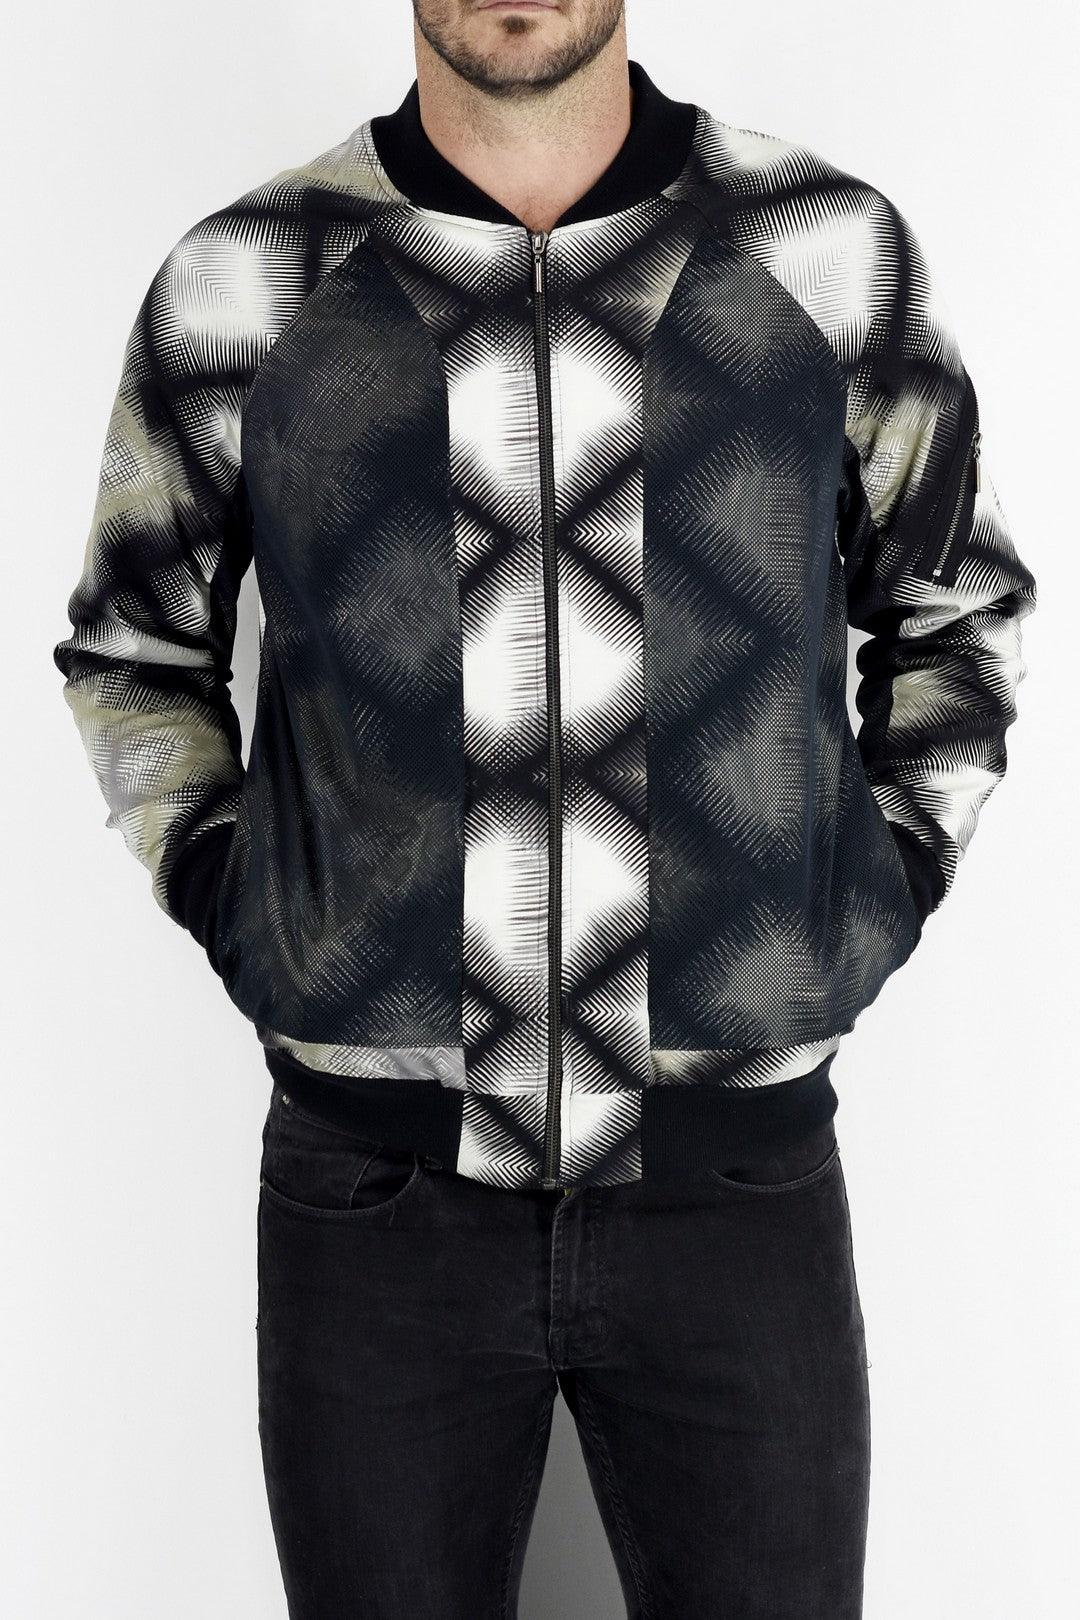 ZG5162 Urban X Jacket with mesh overlay